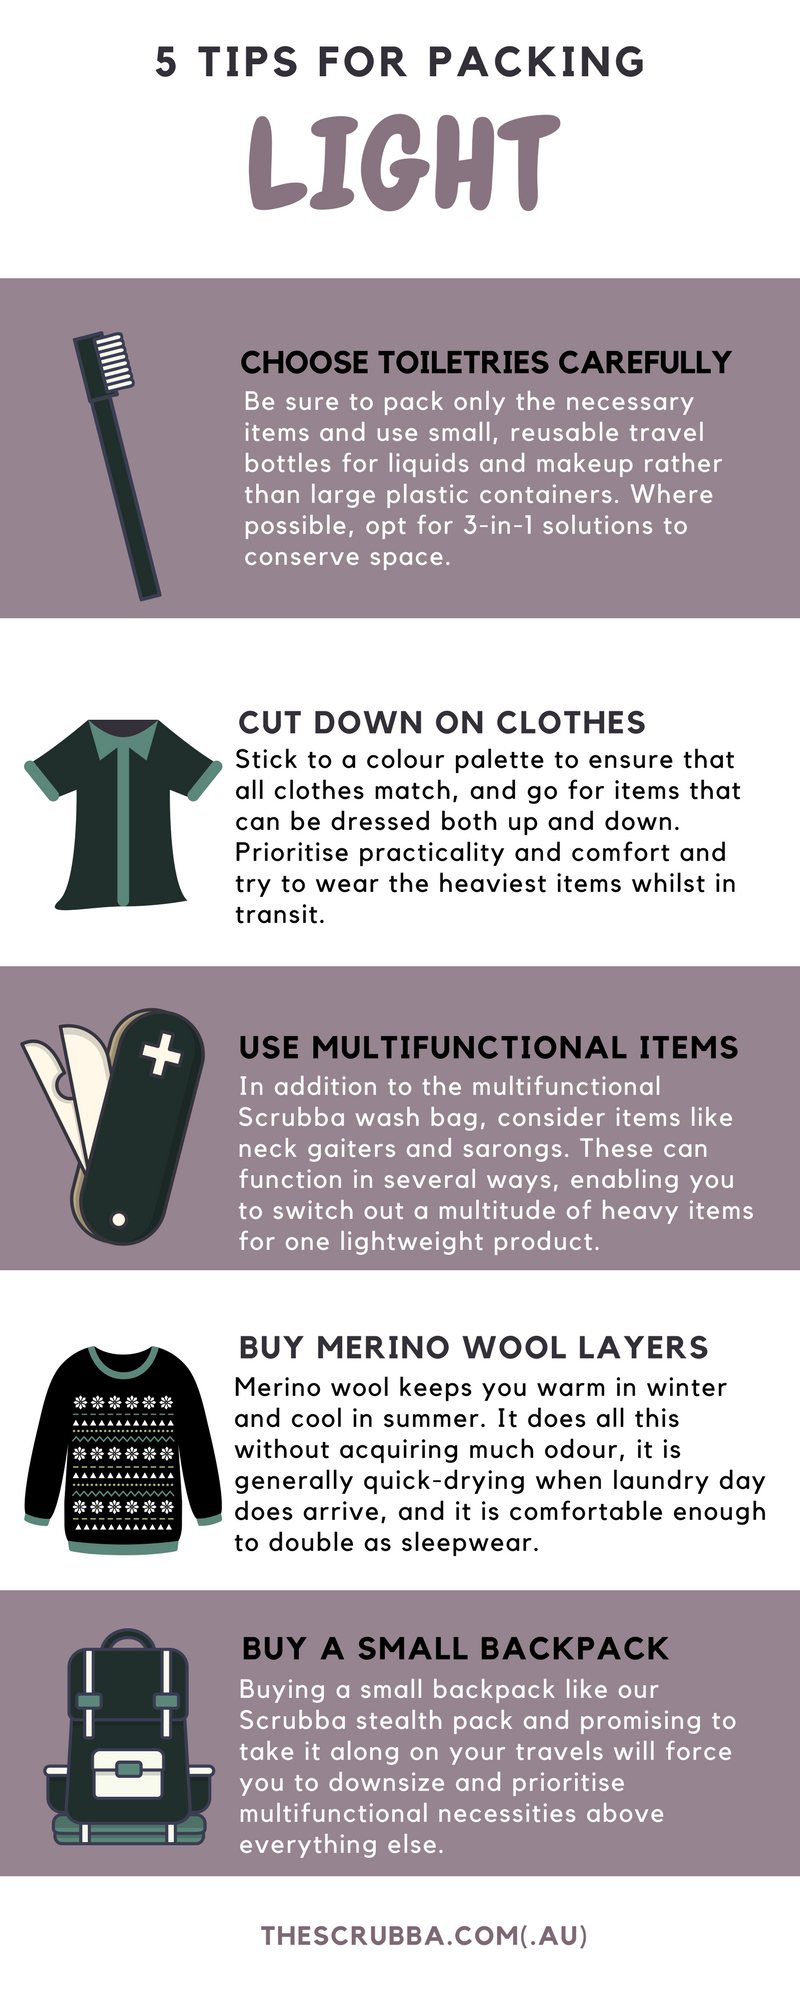 5 Tips for Packing Light Infographic